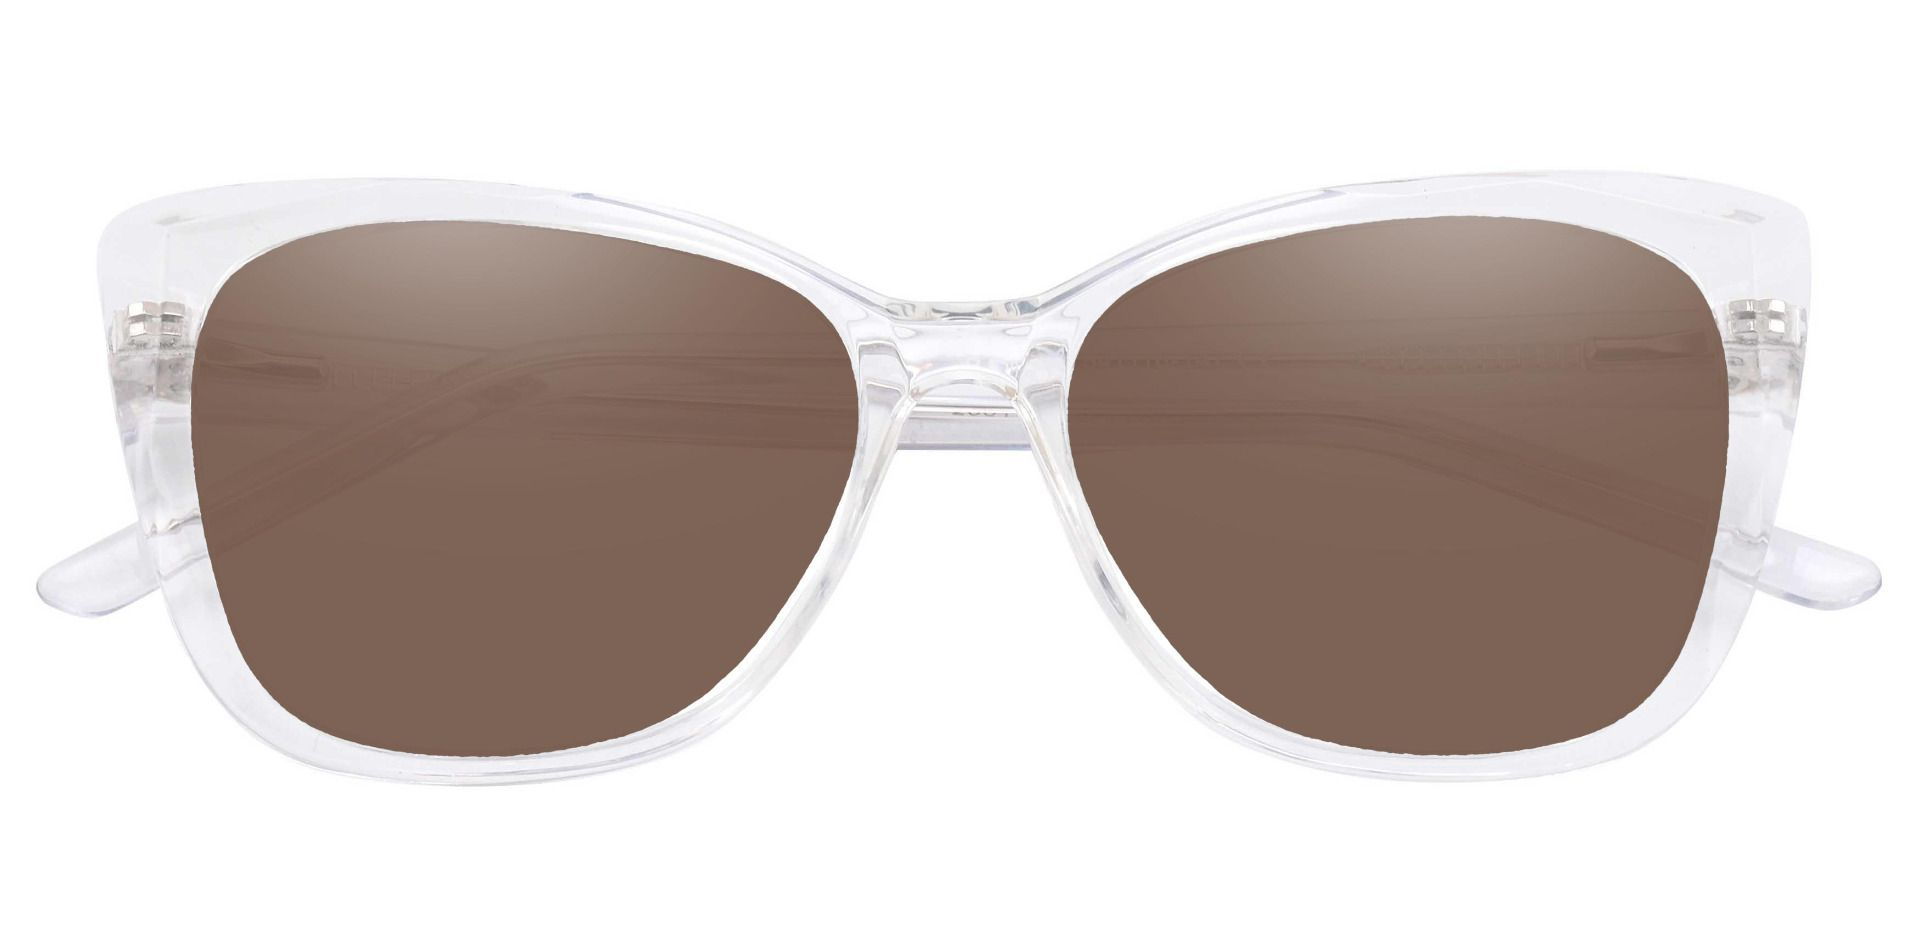 Mabel Square Prescription Sunglasses - Clear Frame With Brown Lenses